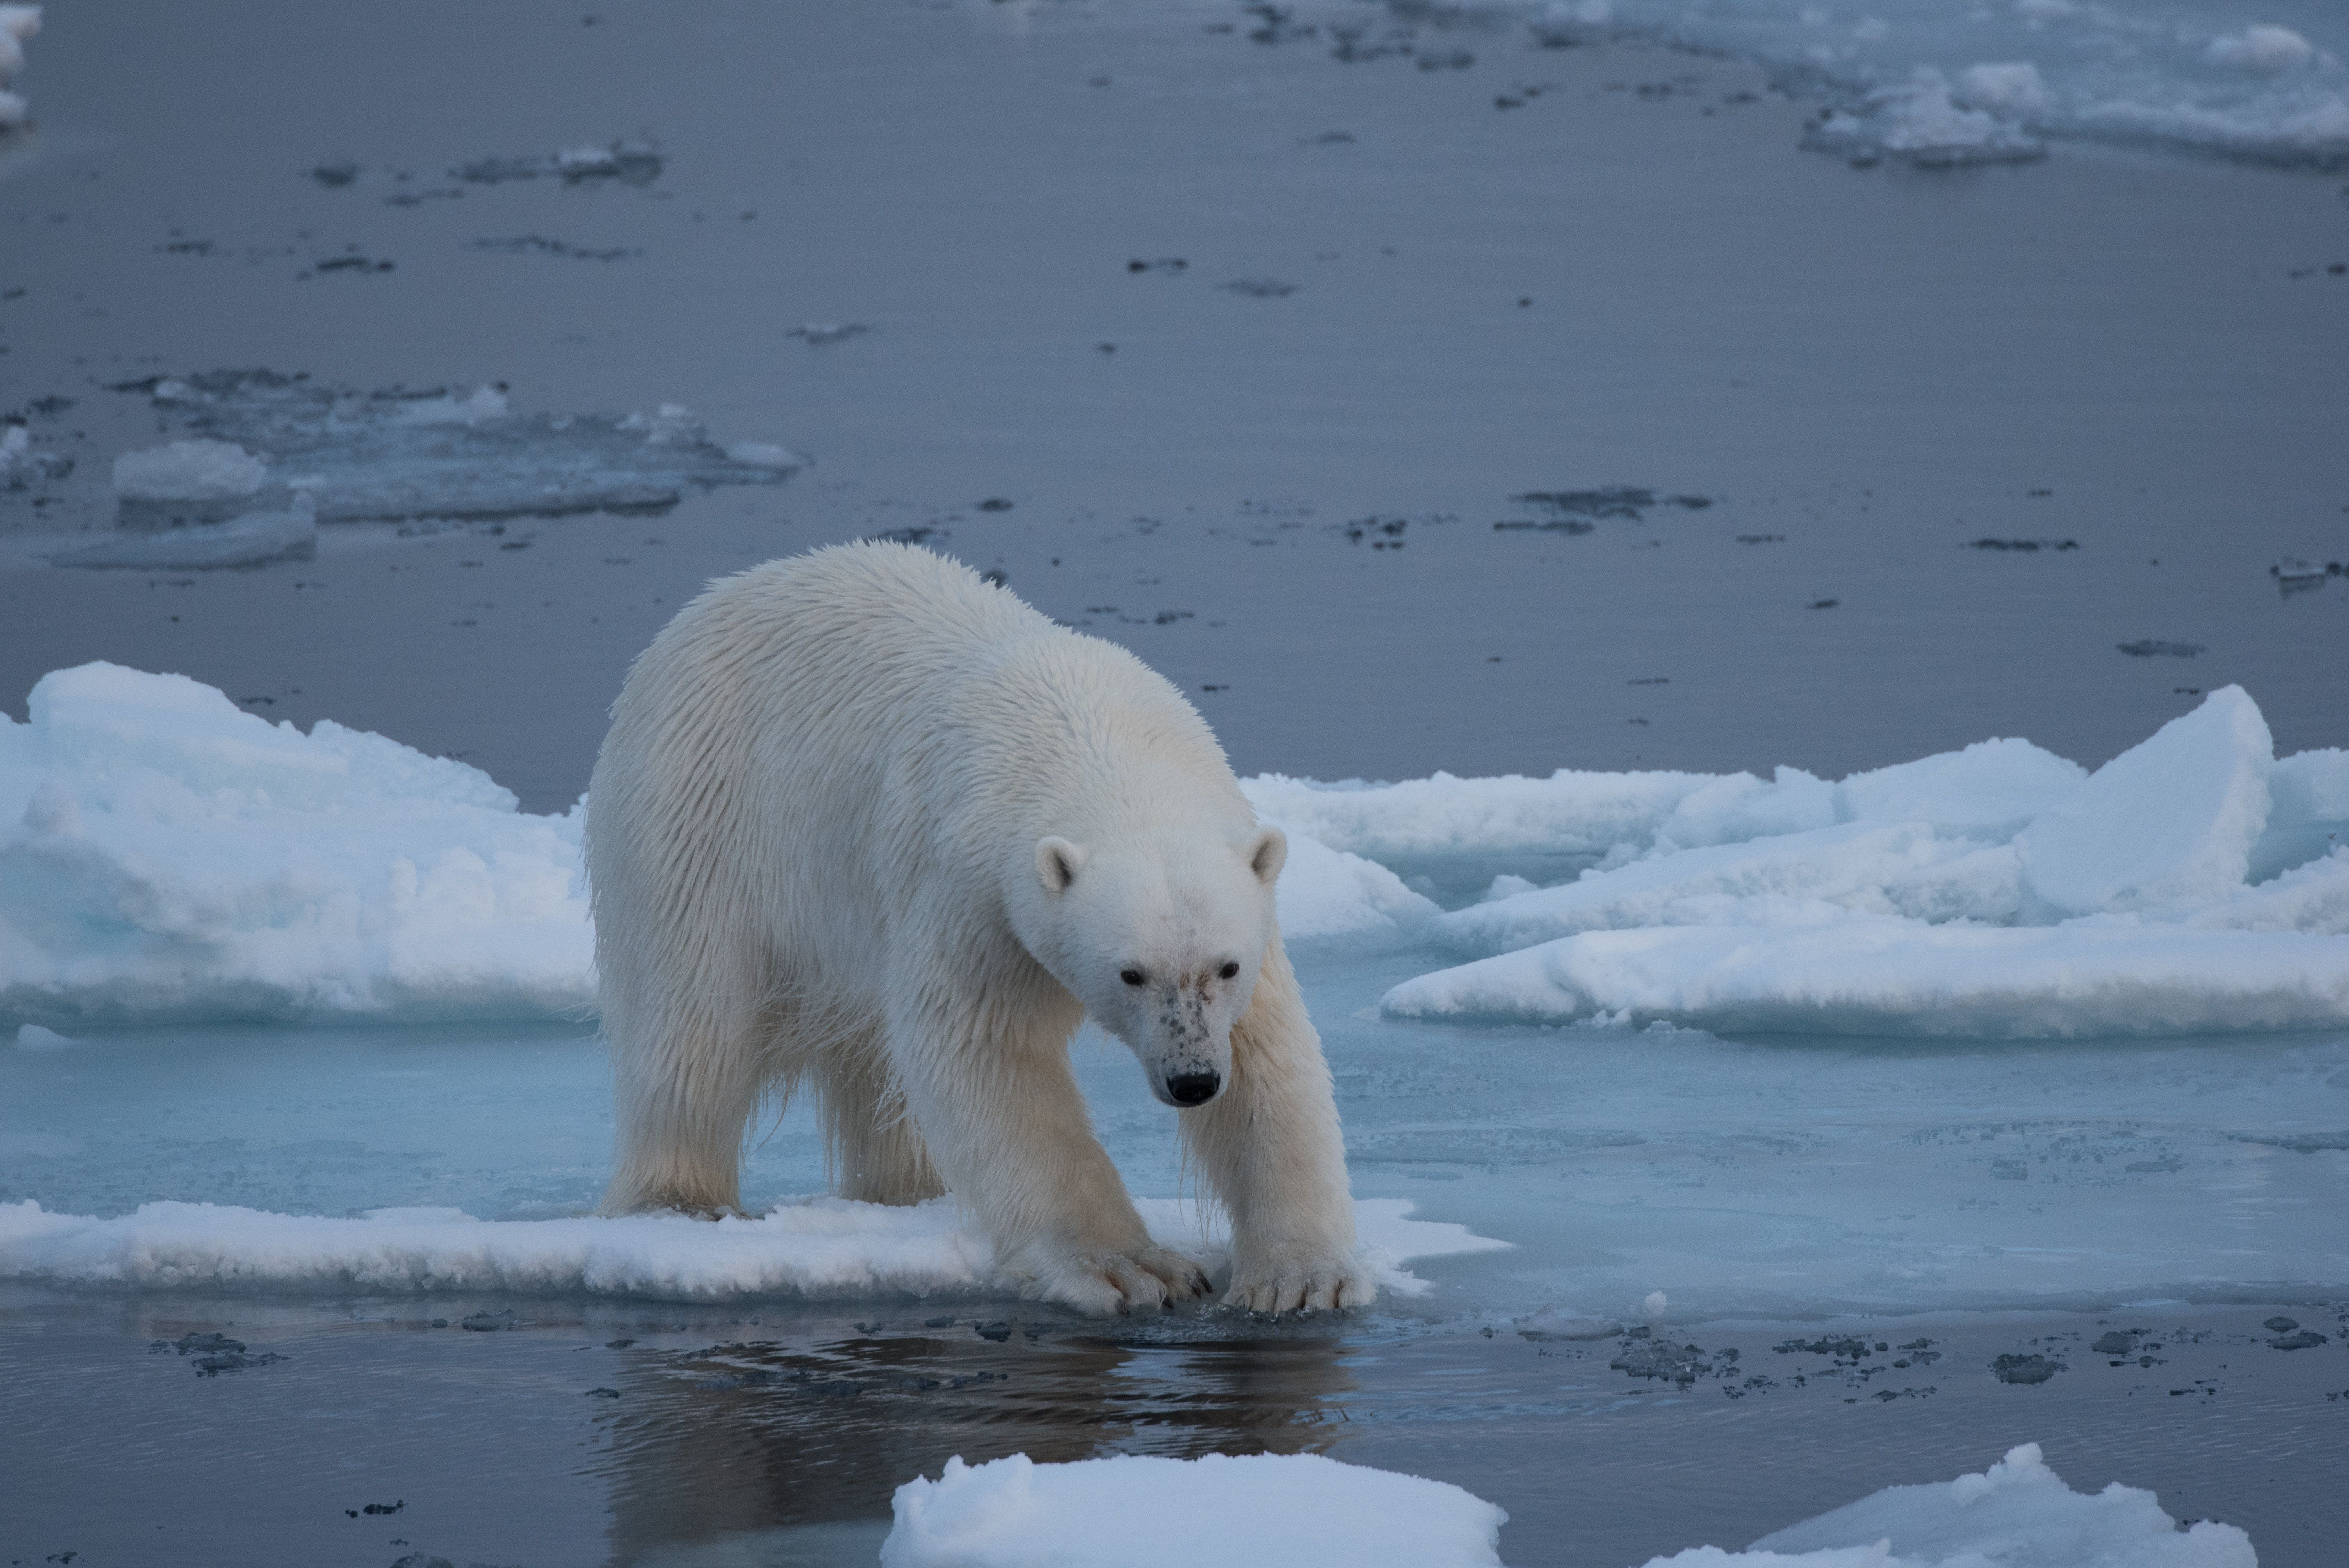 A polar bear stepping onto sea ice. Melting Arctic sea ice may not only threaten the habitat of animals like polar bears but